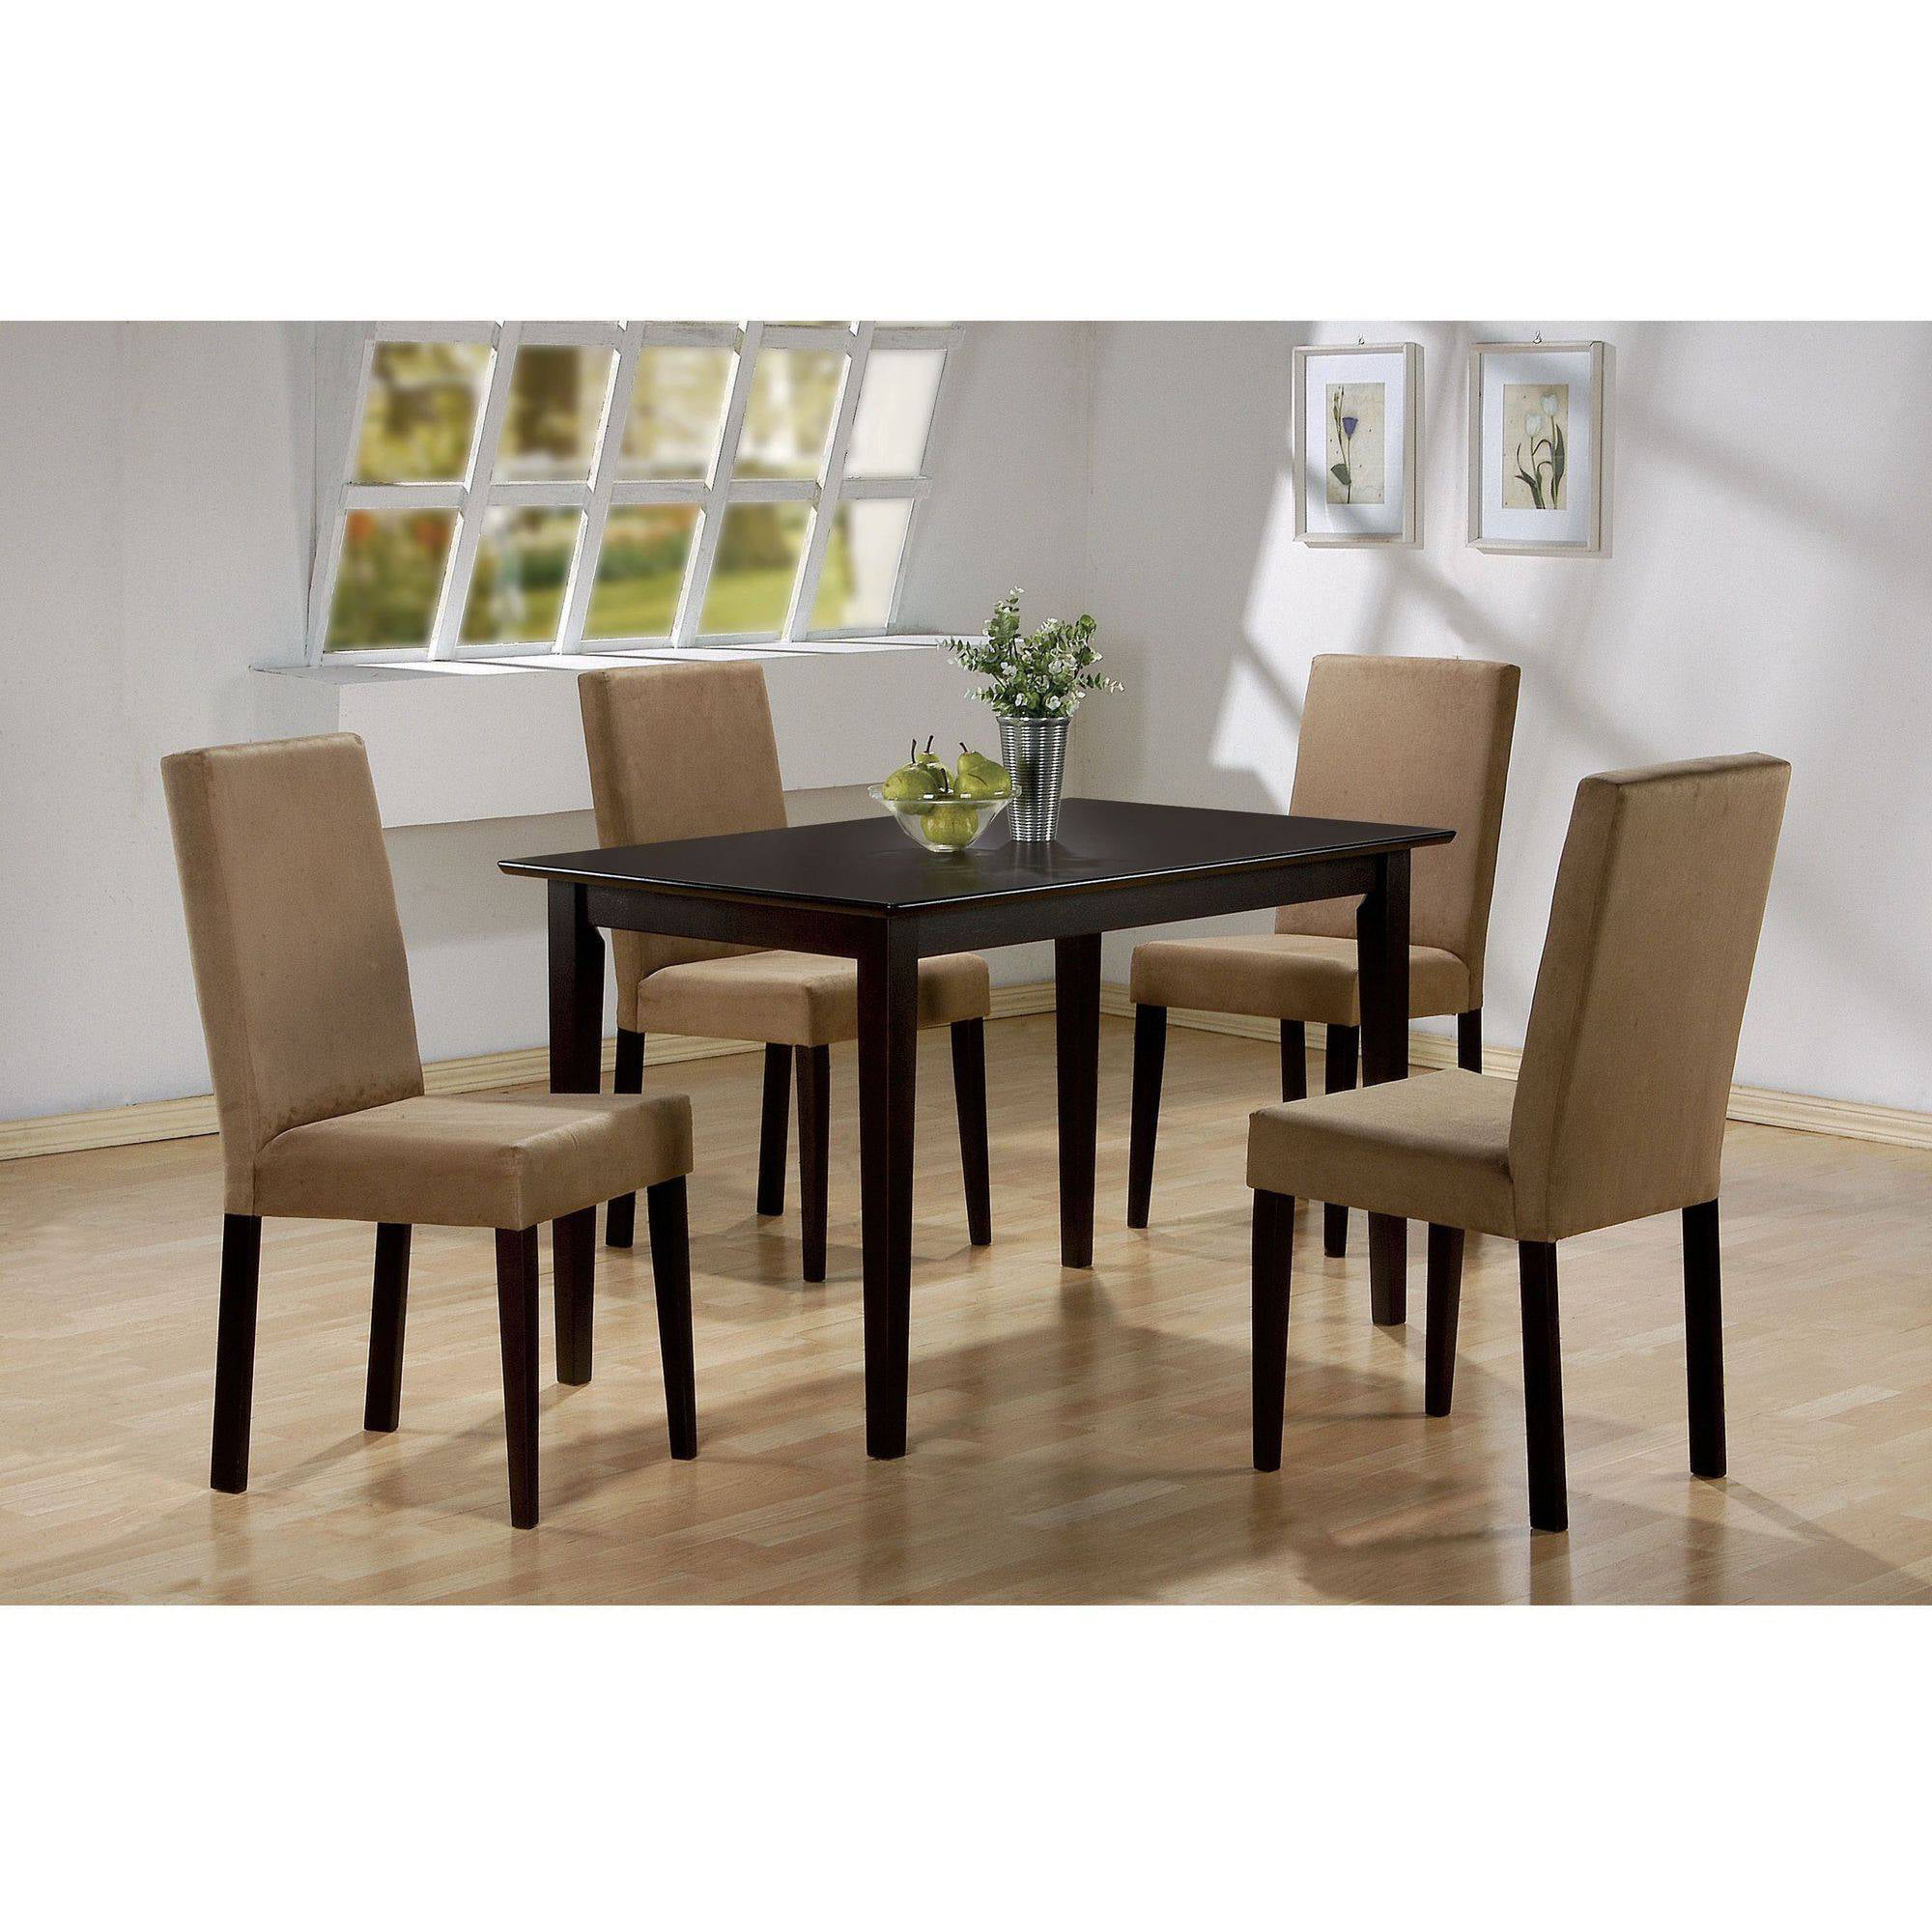 Walmart Dining Room Furniture: Coaster Company Clayton Dining Table, Chairs Sold